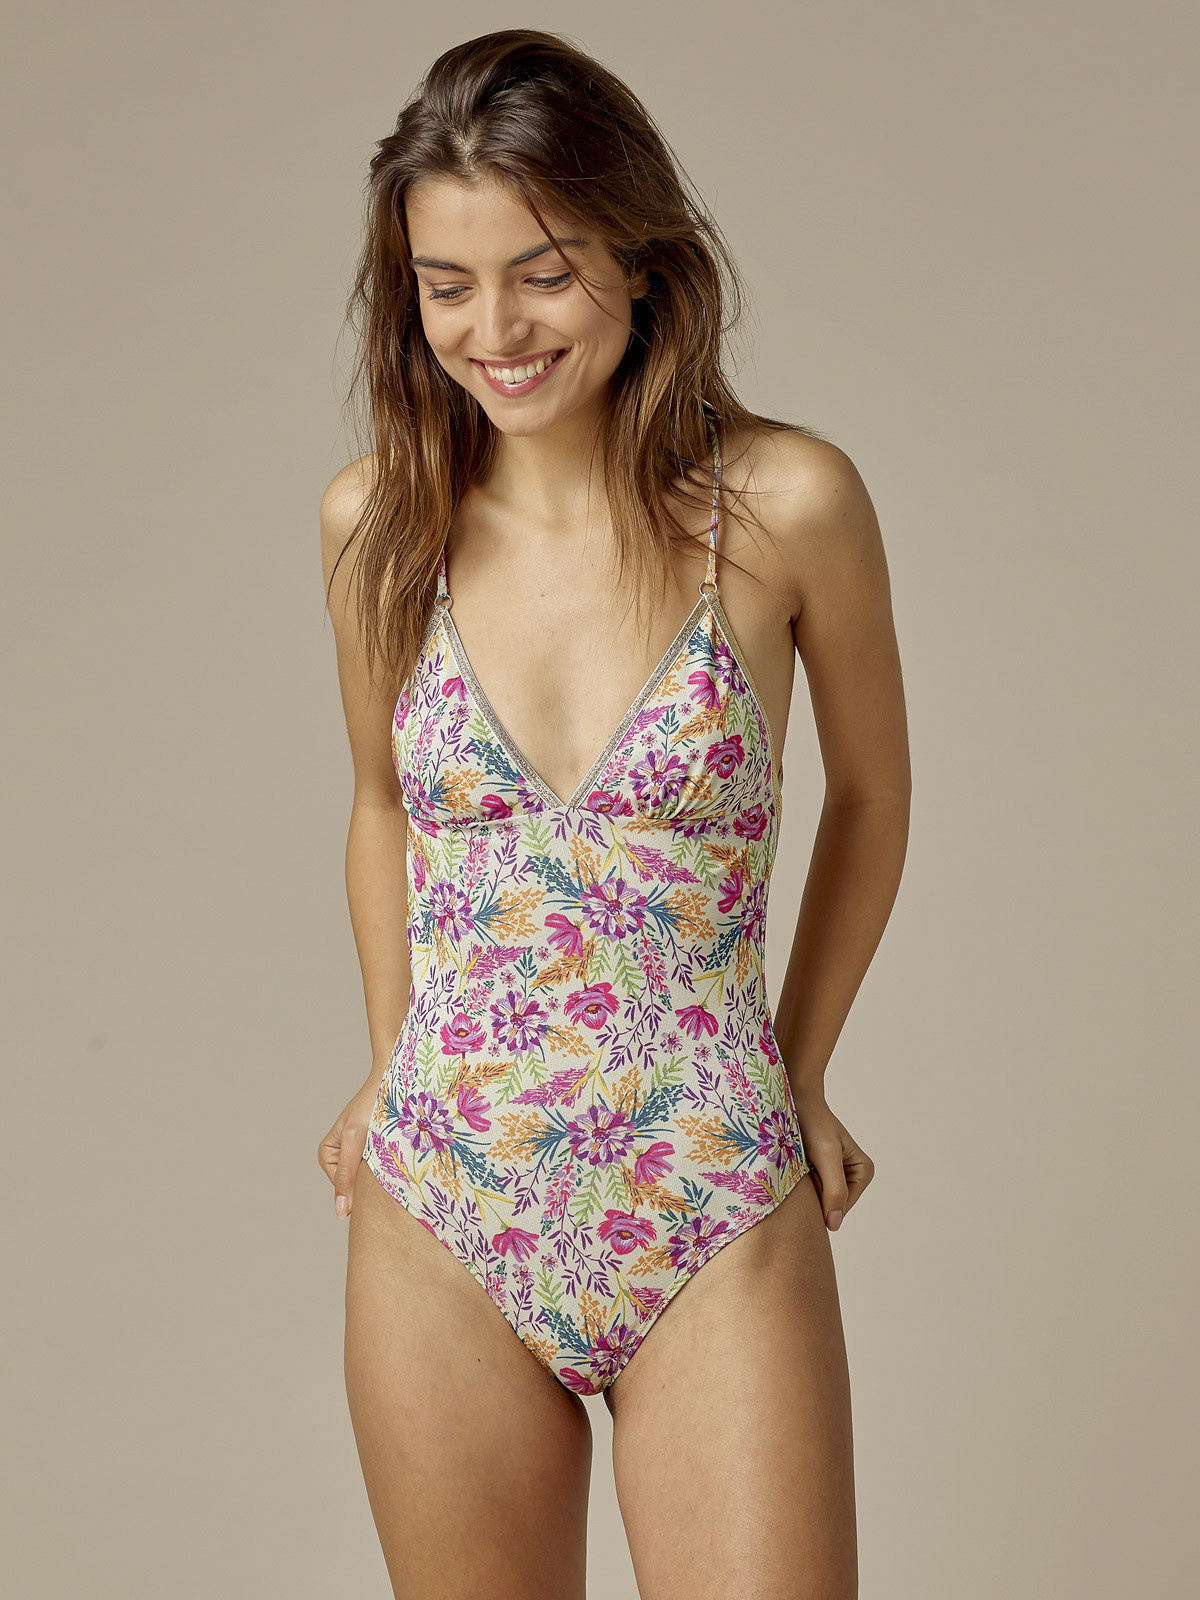 Swimsuit Gilda Summery Flowers